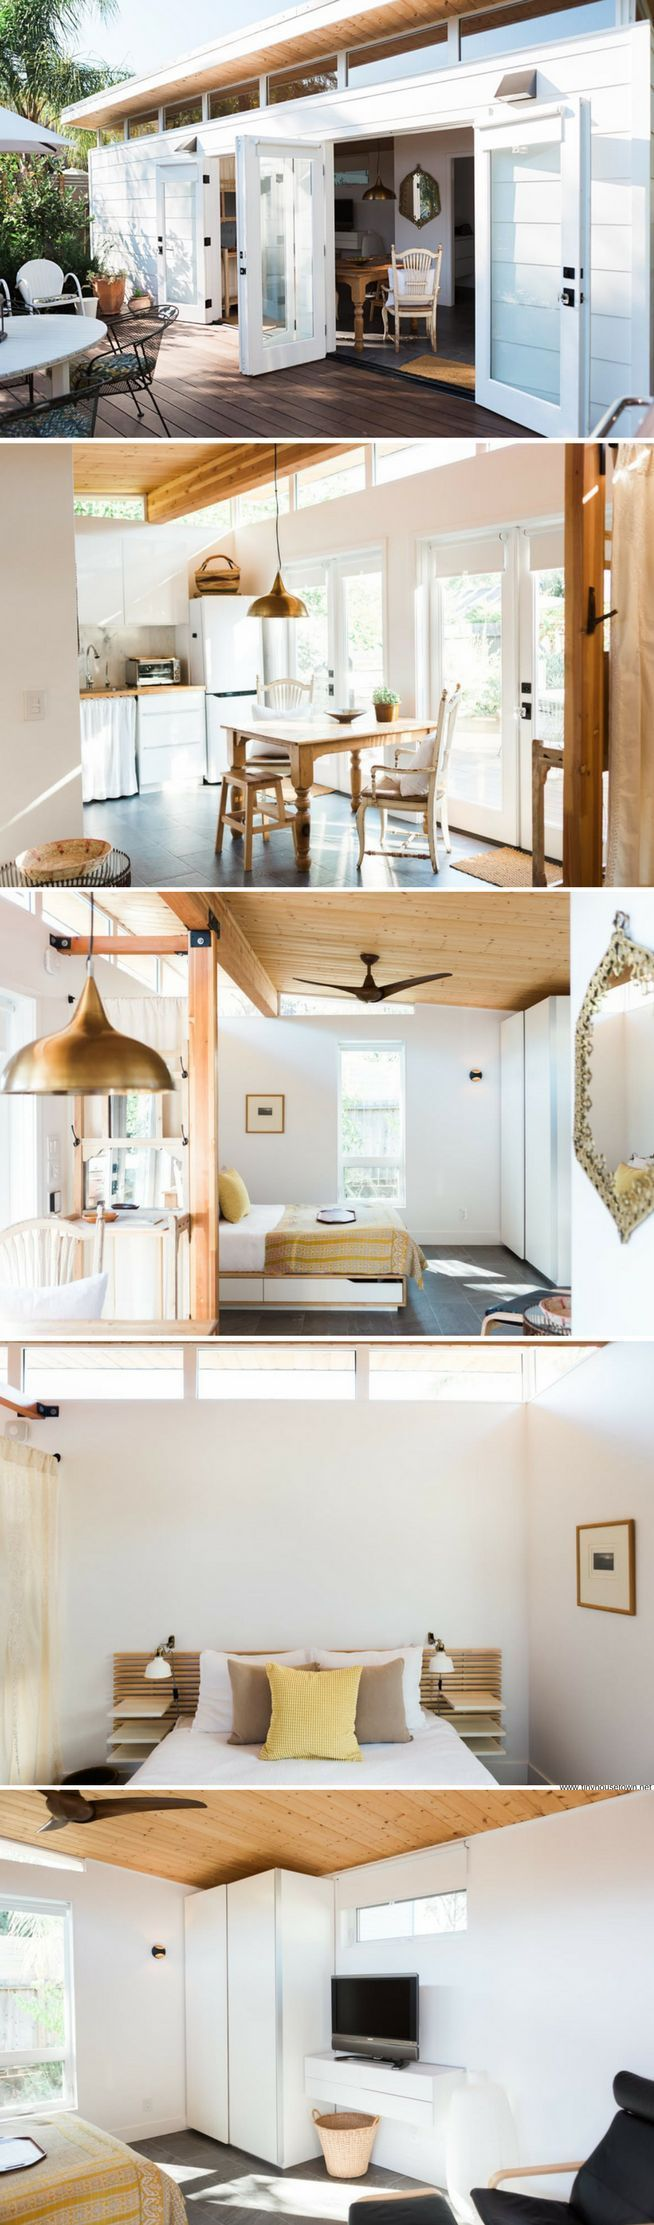 Best 25 Small Modern Home Ideas On Pinterest